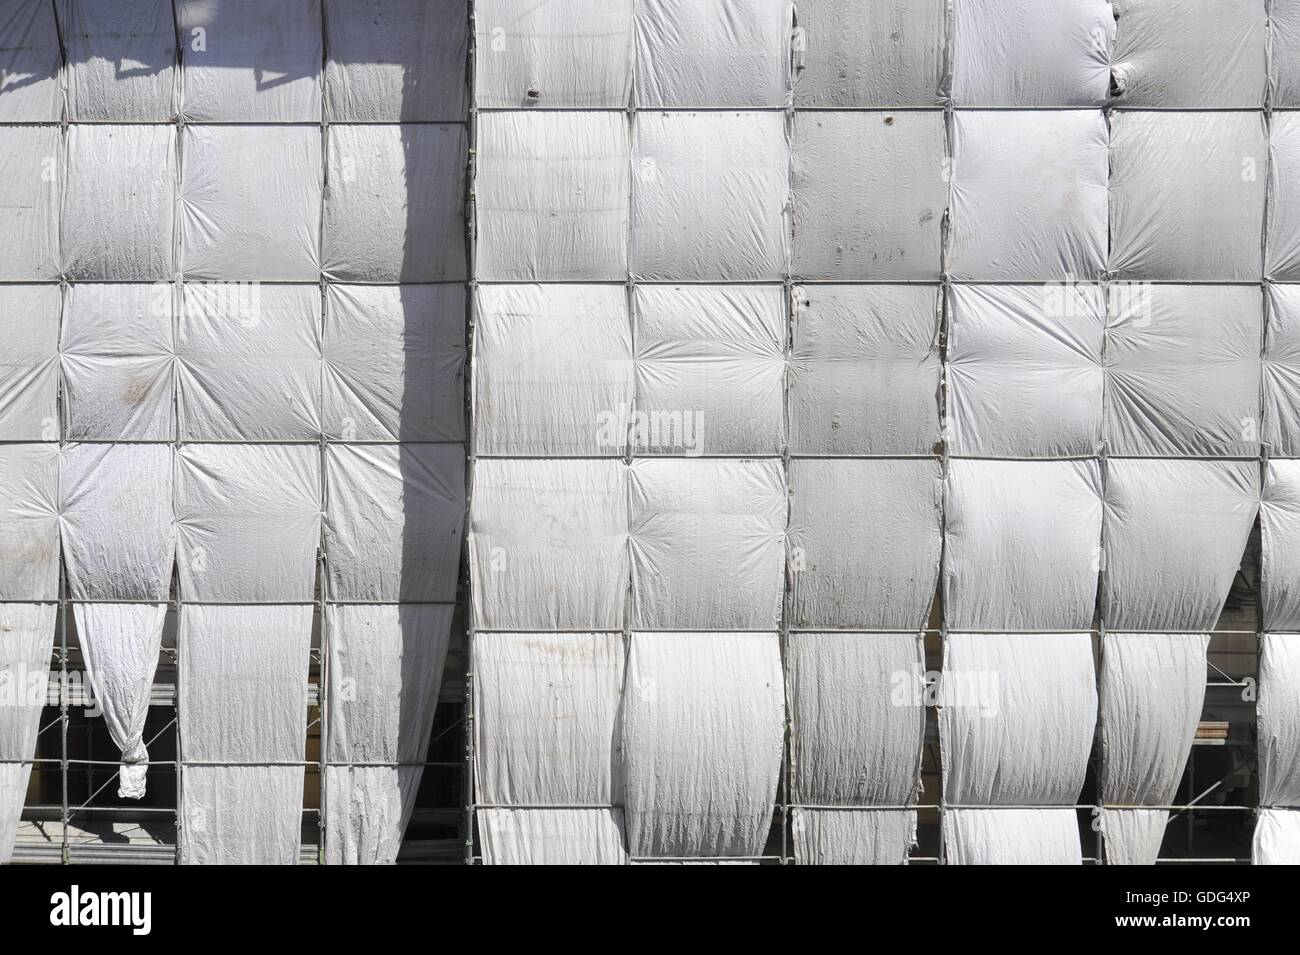 dust cover on the facade of a building under renovation stock image